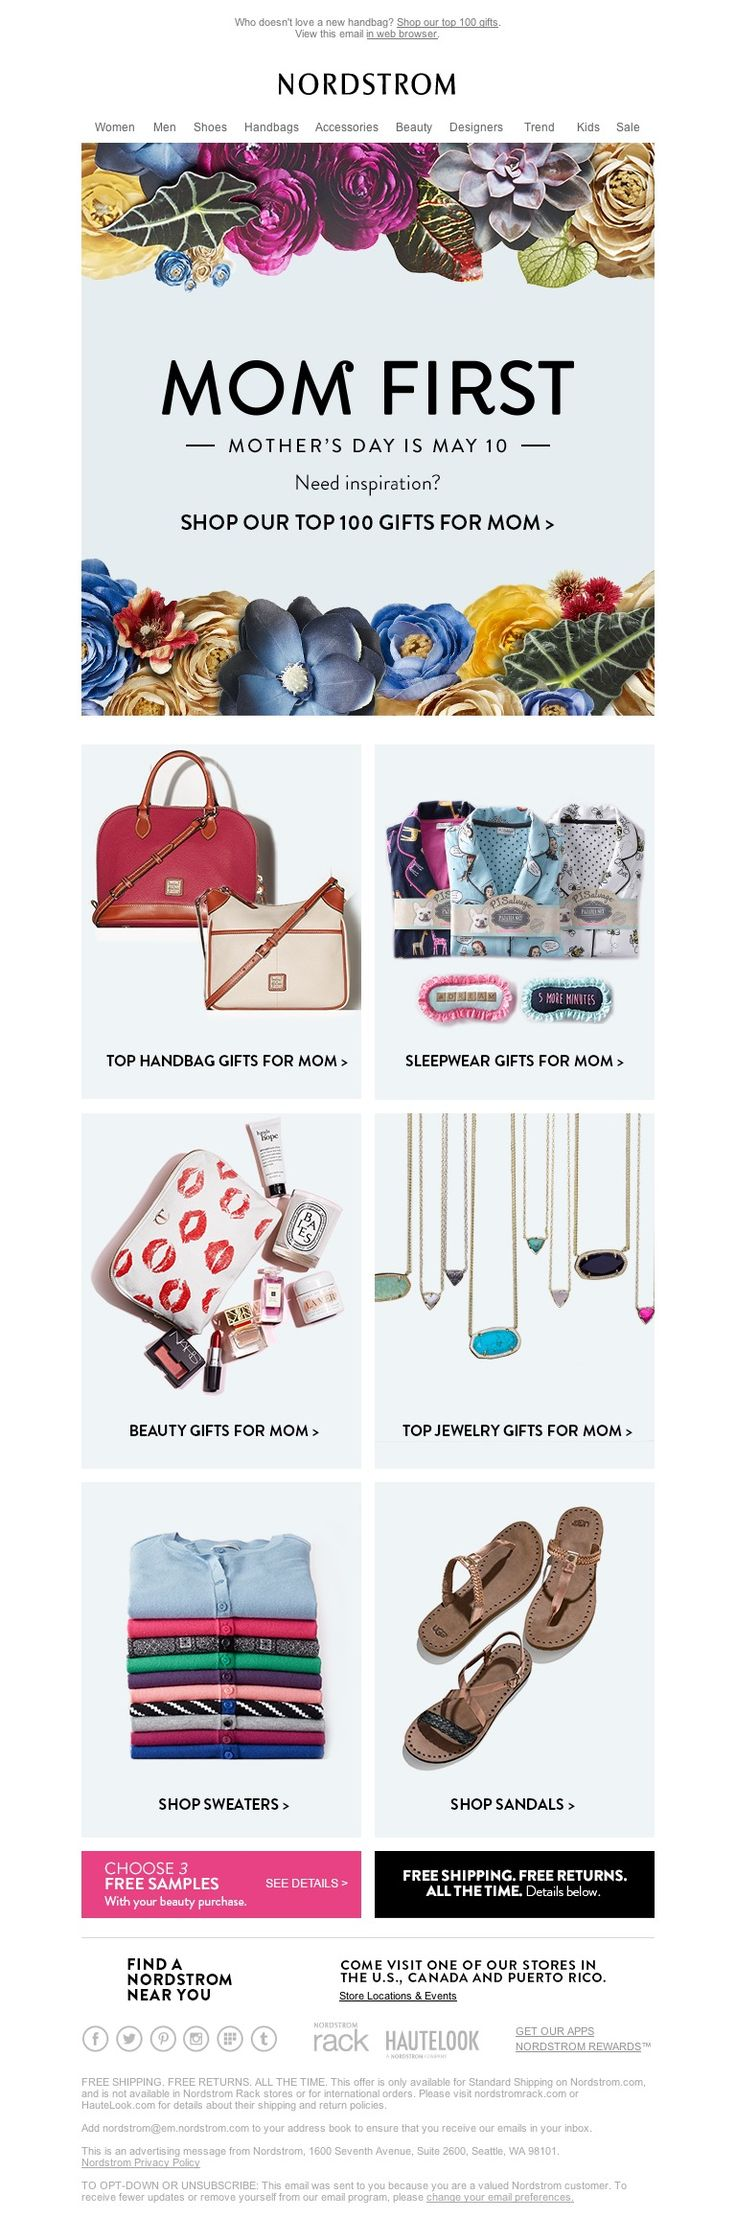 Nordstrom - Mother's Day Handbags, Sleepwear & More Top Gifts